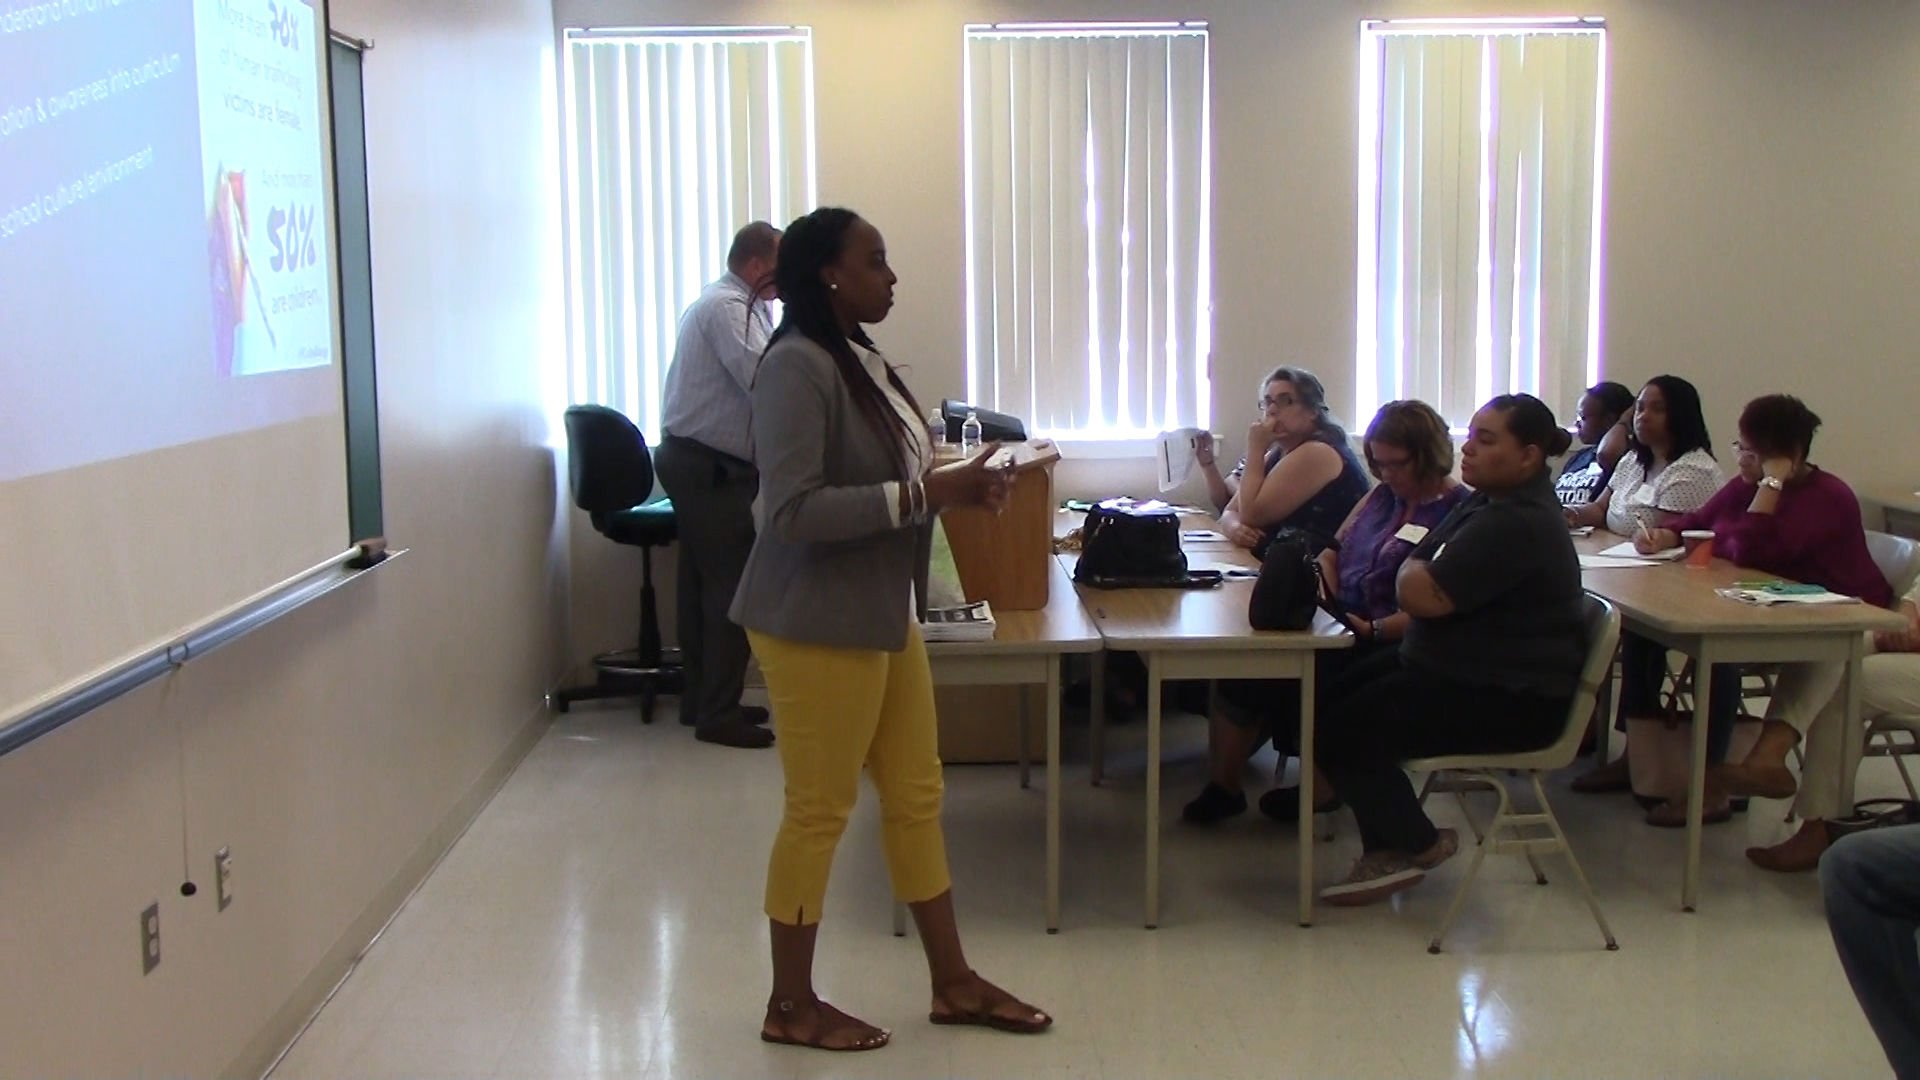 VIDEO   'Our youth are at risk': human trafficking symposium identifies risks, explores solutions   WDEL